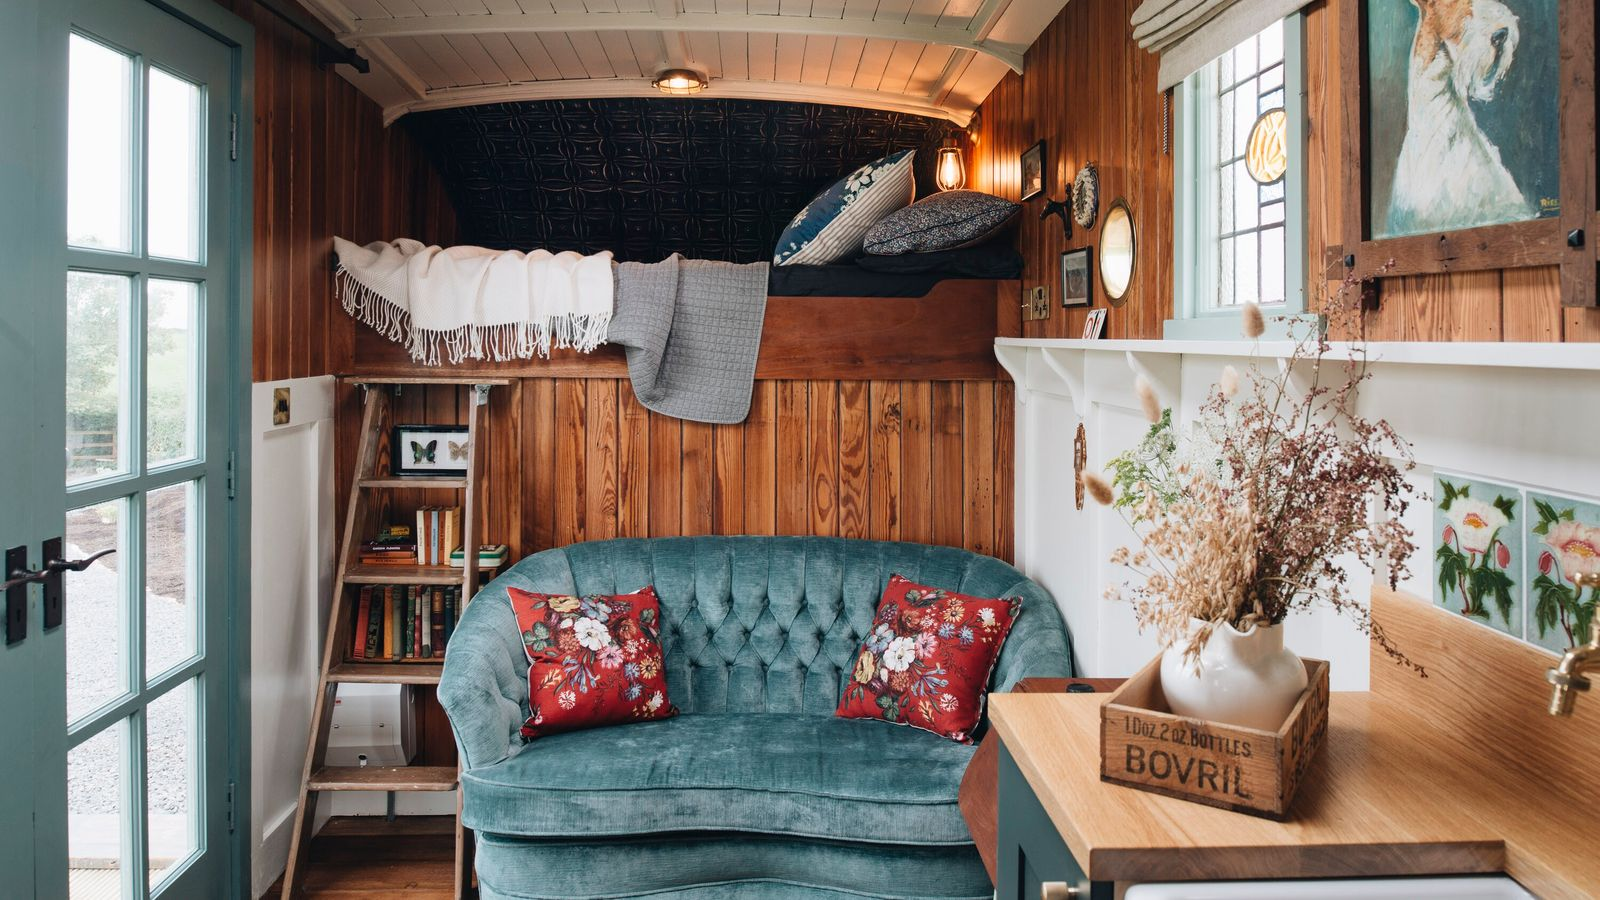 The Oat Box, onhen-peppered farmlandnear Northern Ireland's windswept north coast,is a sweet retreat for two tucked ...